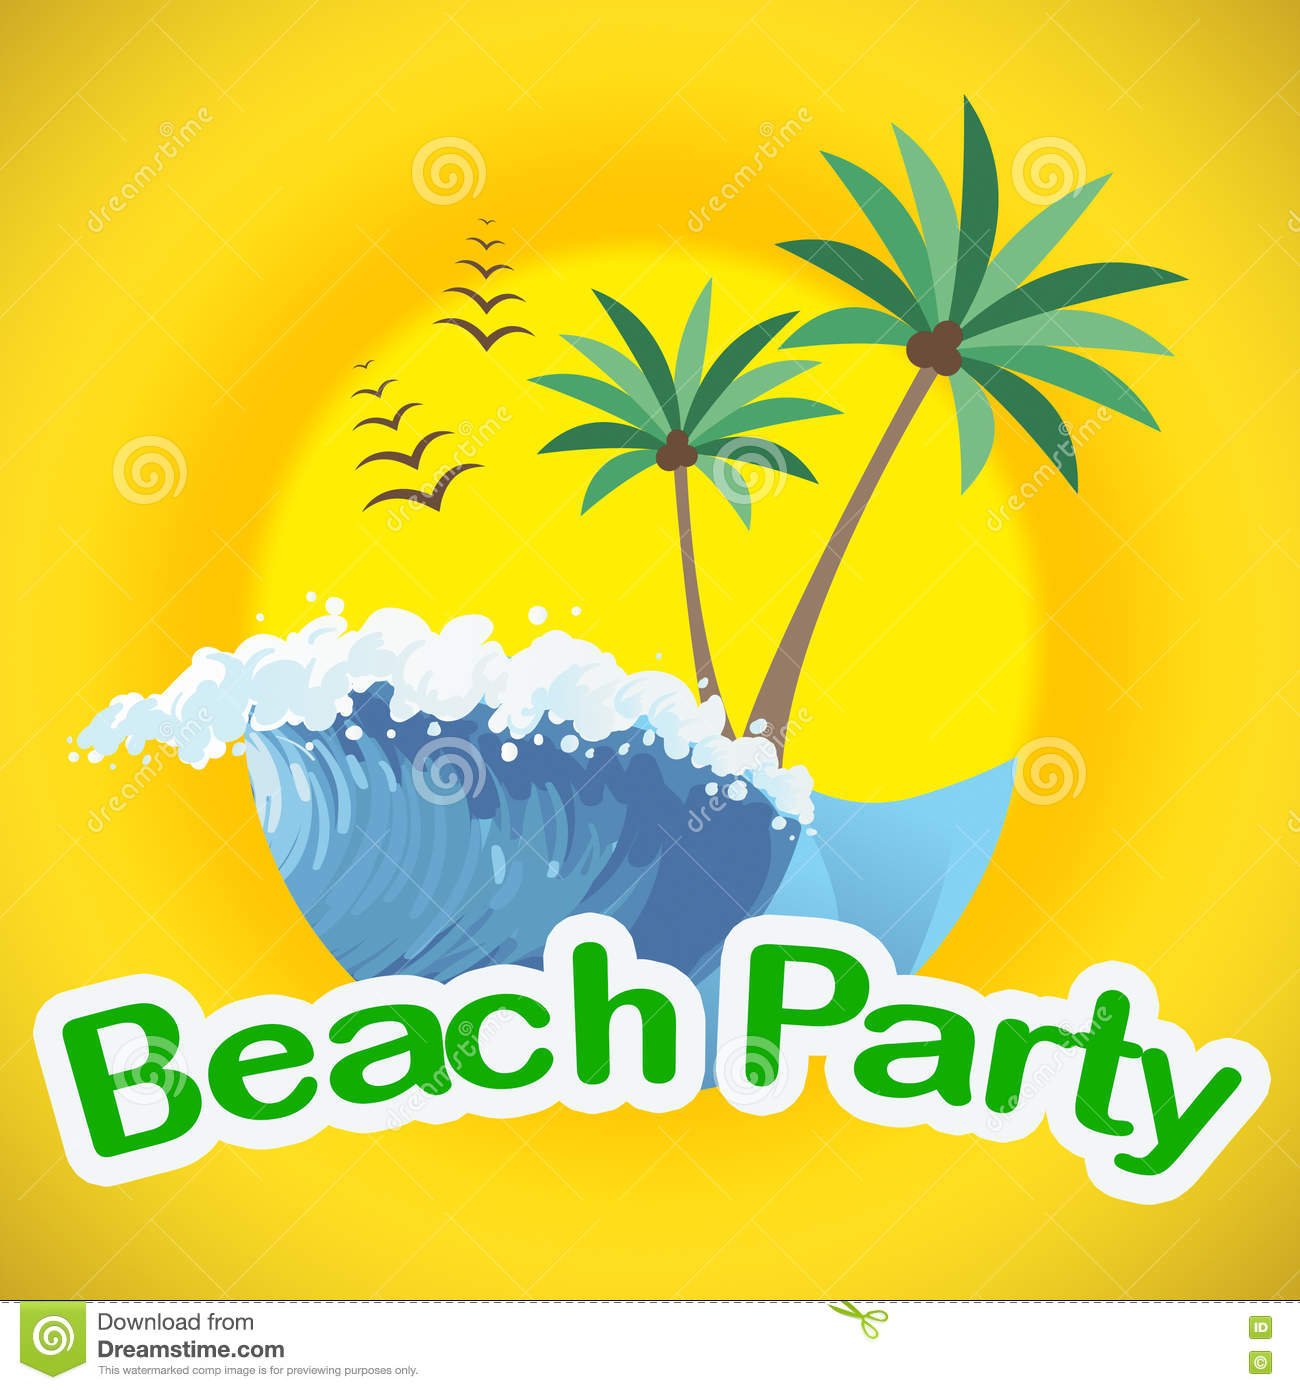 Beach Party Indicates Summer Time And Beaches